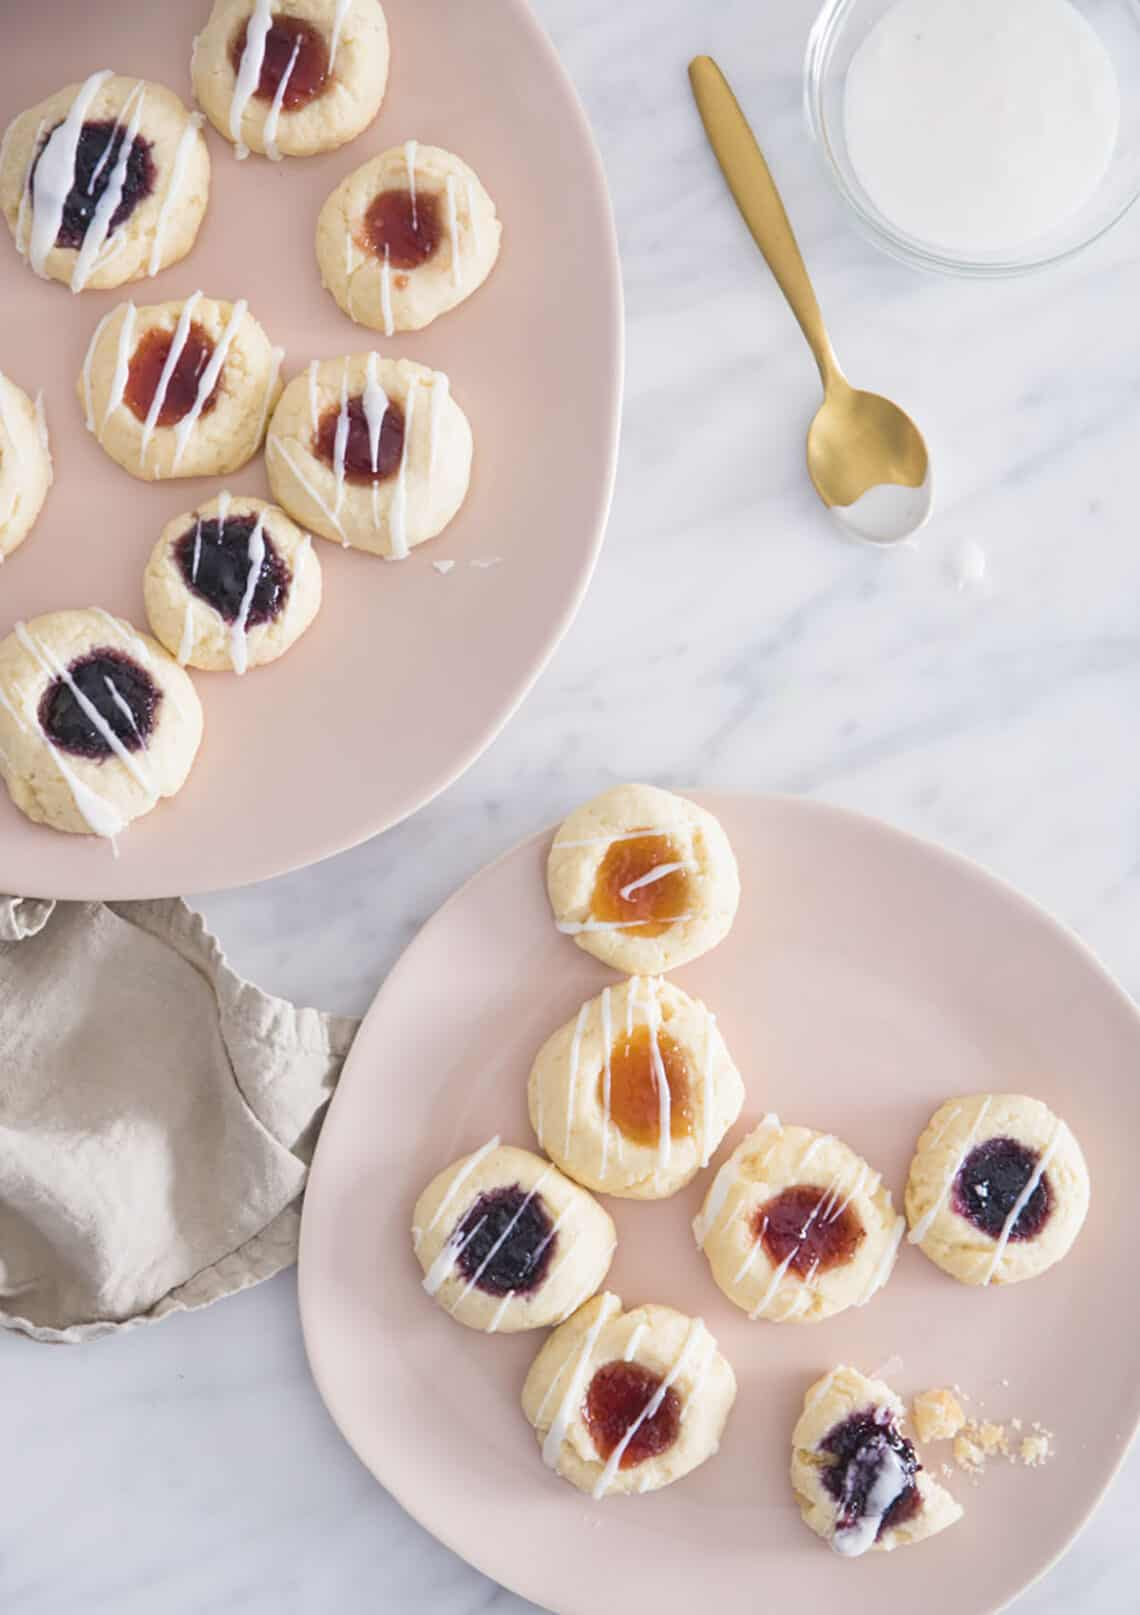 Two soft pink plates filled with thumbprint cookies on a white marble table.